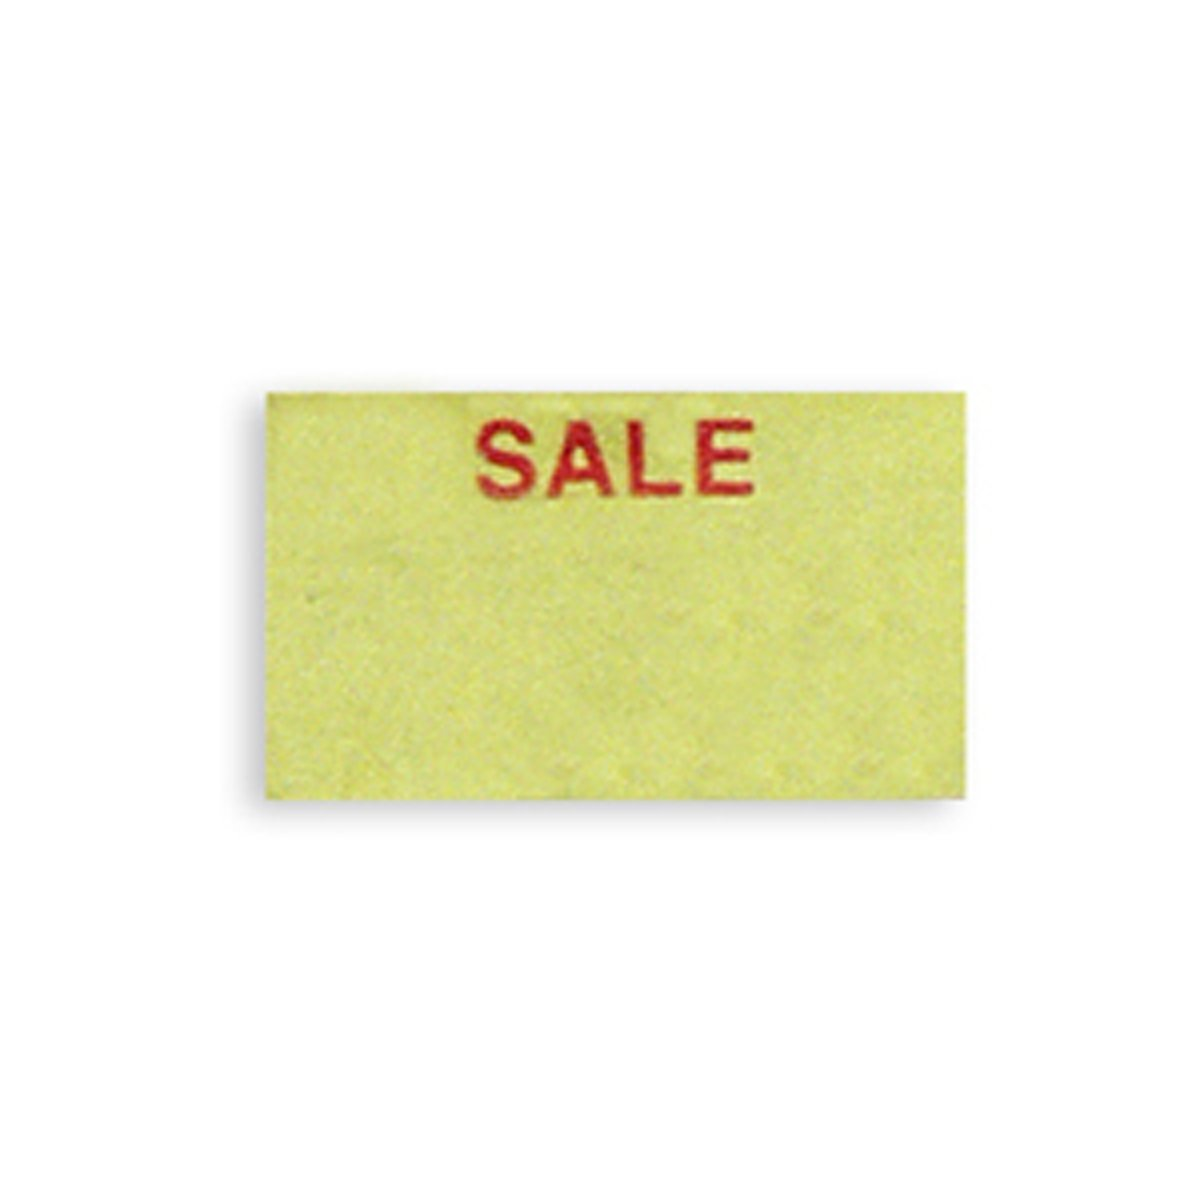 Jewelry Price Tag Labels for Dennison 106 Label Gun Yellow Sale Retail Store Fixture New